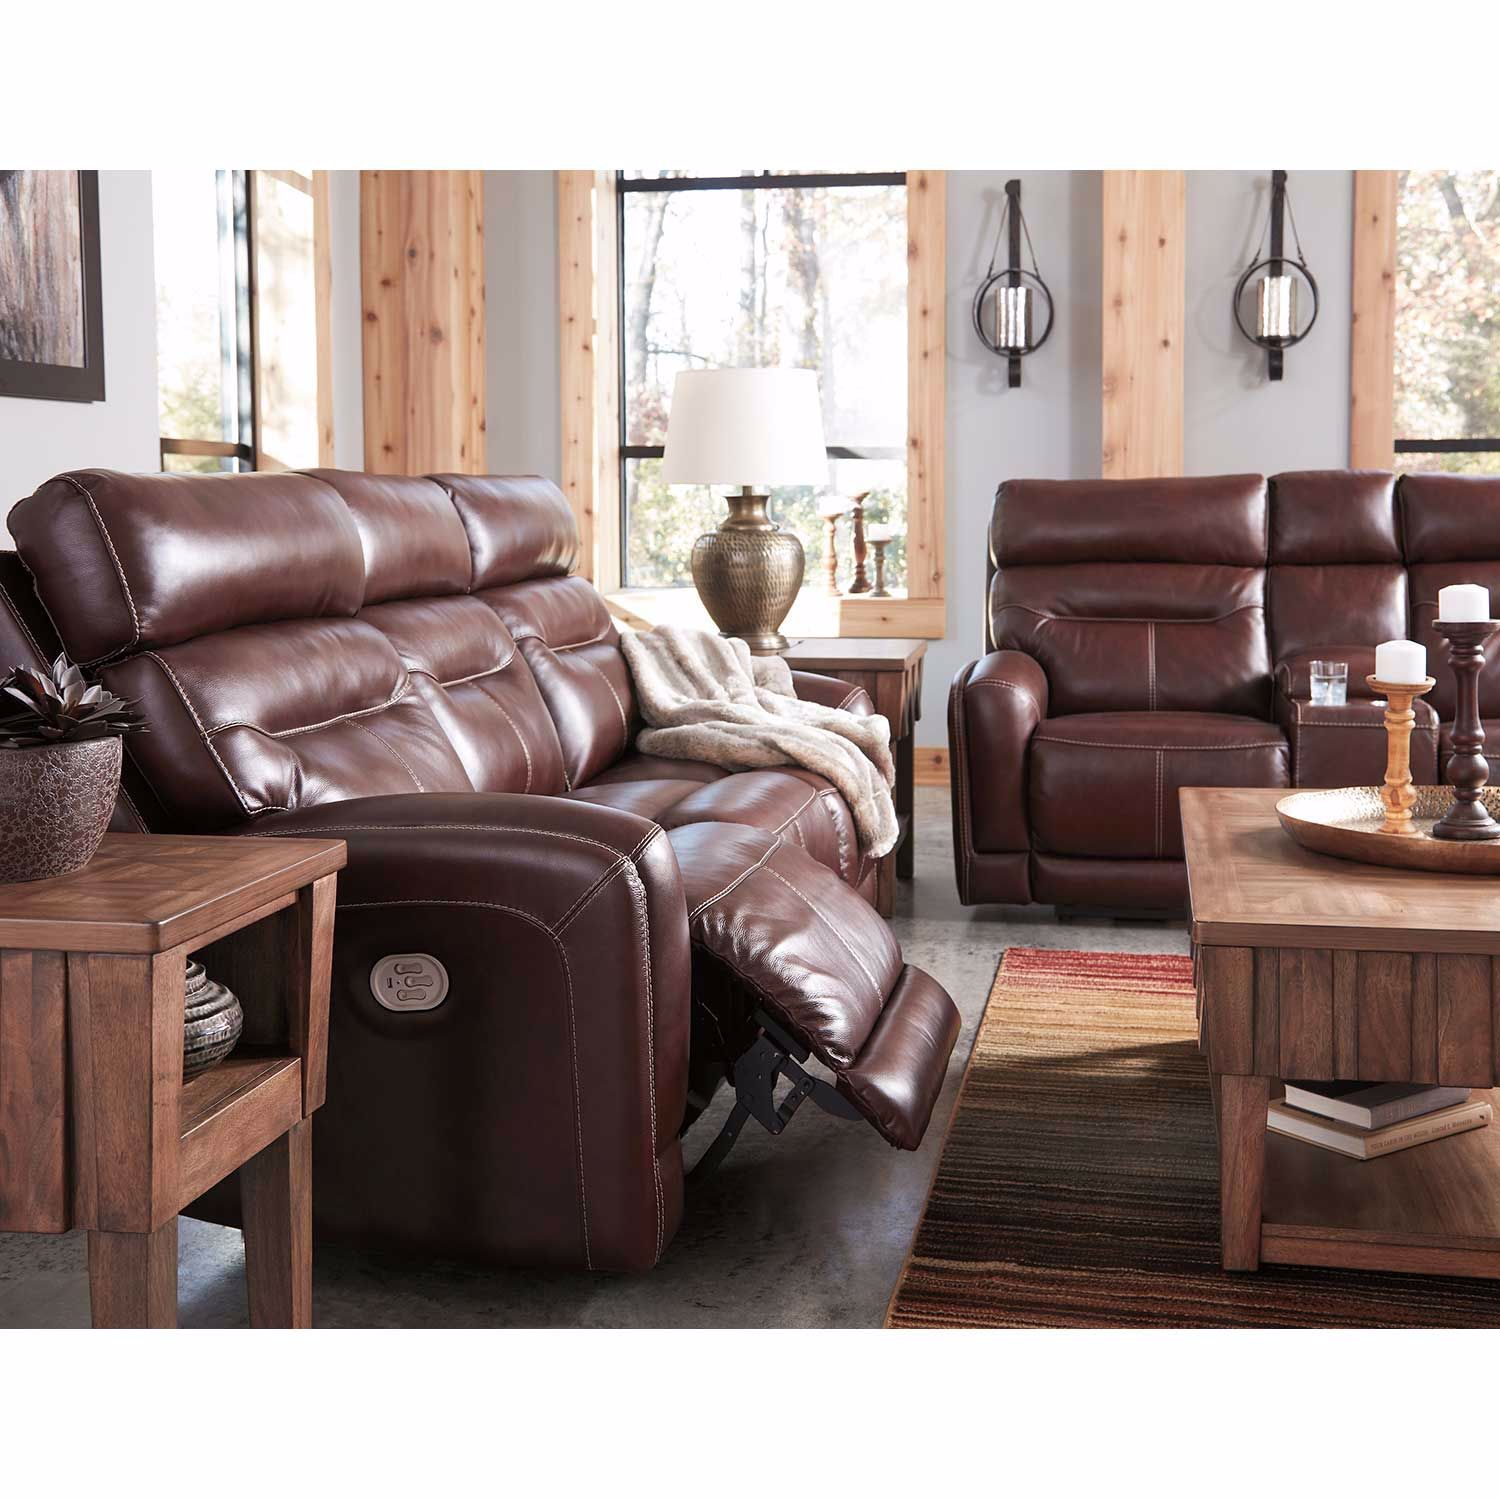 Picture of Sessom Leather Power Recliner with Adjustable Headrest and Lumbar